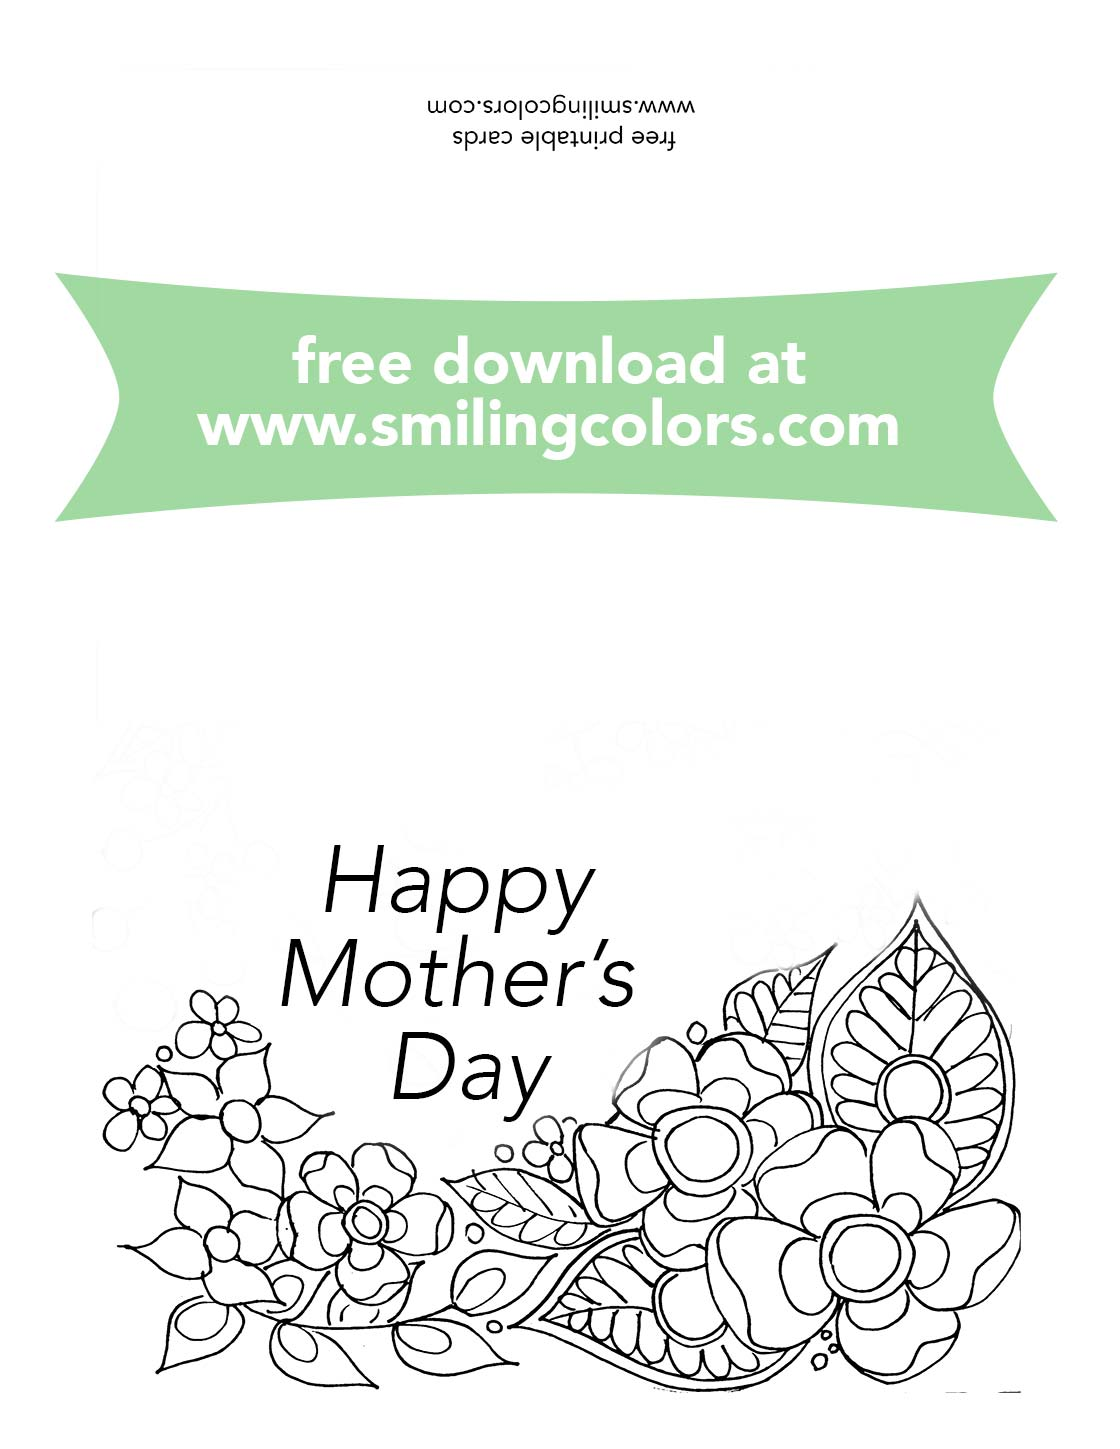 SmilingColors_mothers Day Coloring Cards